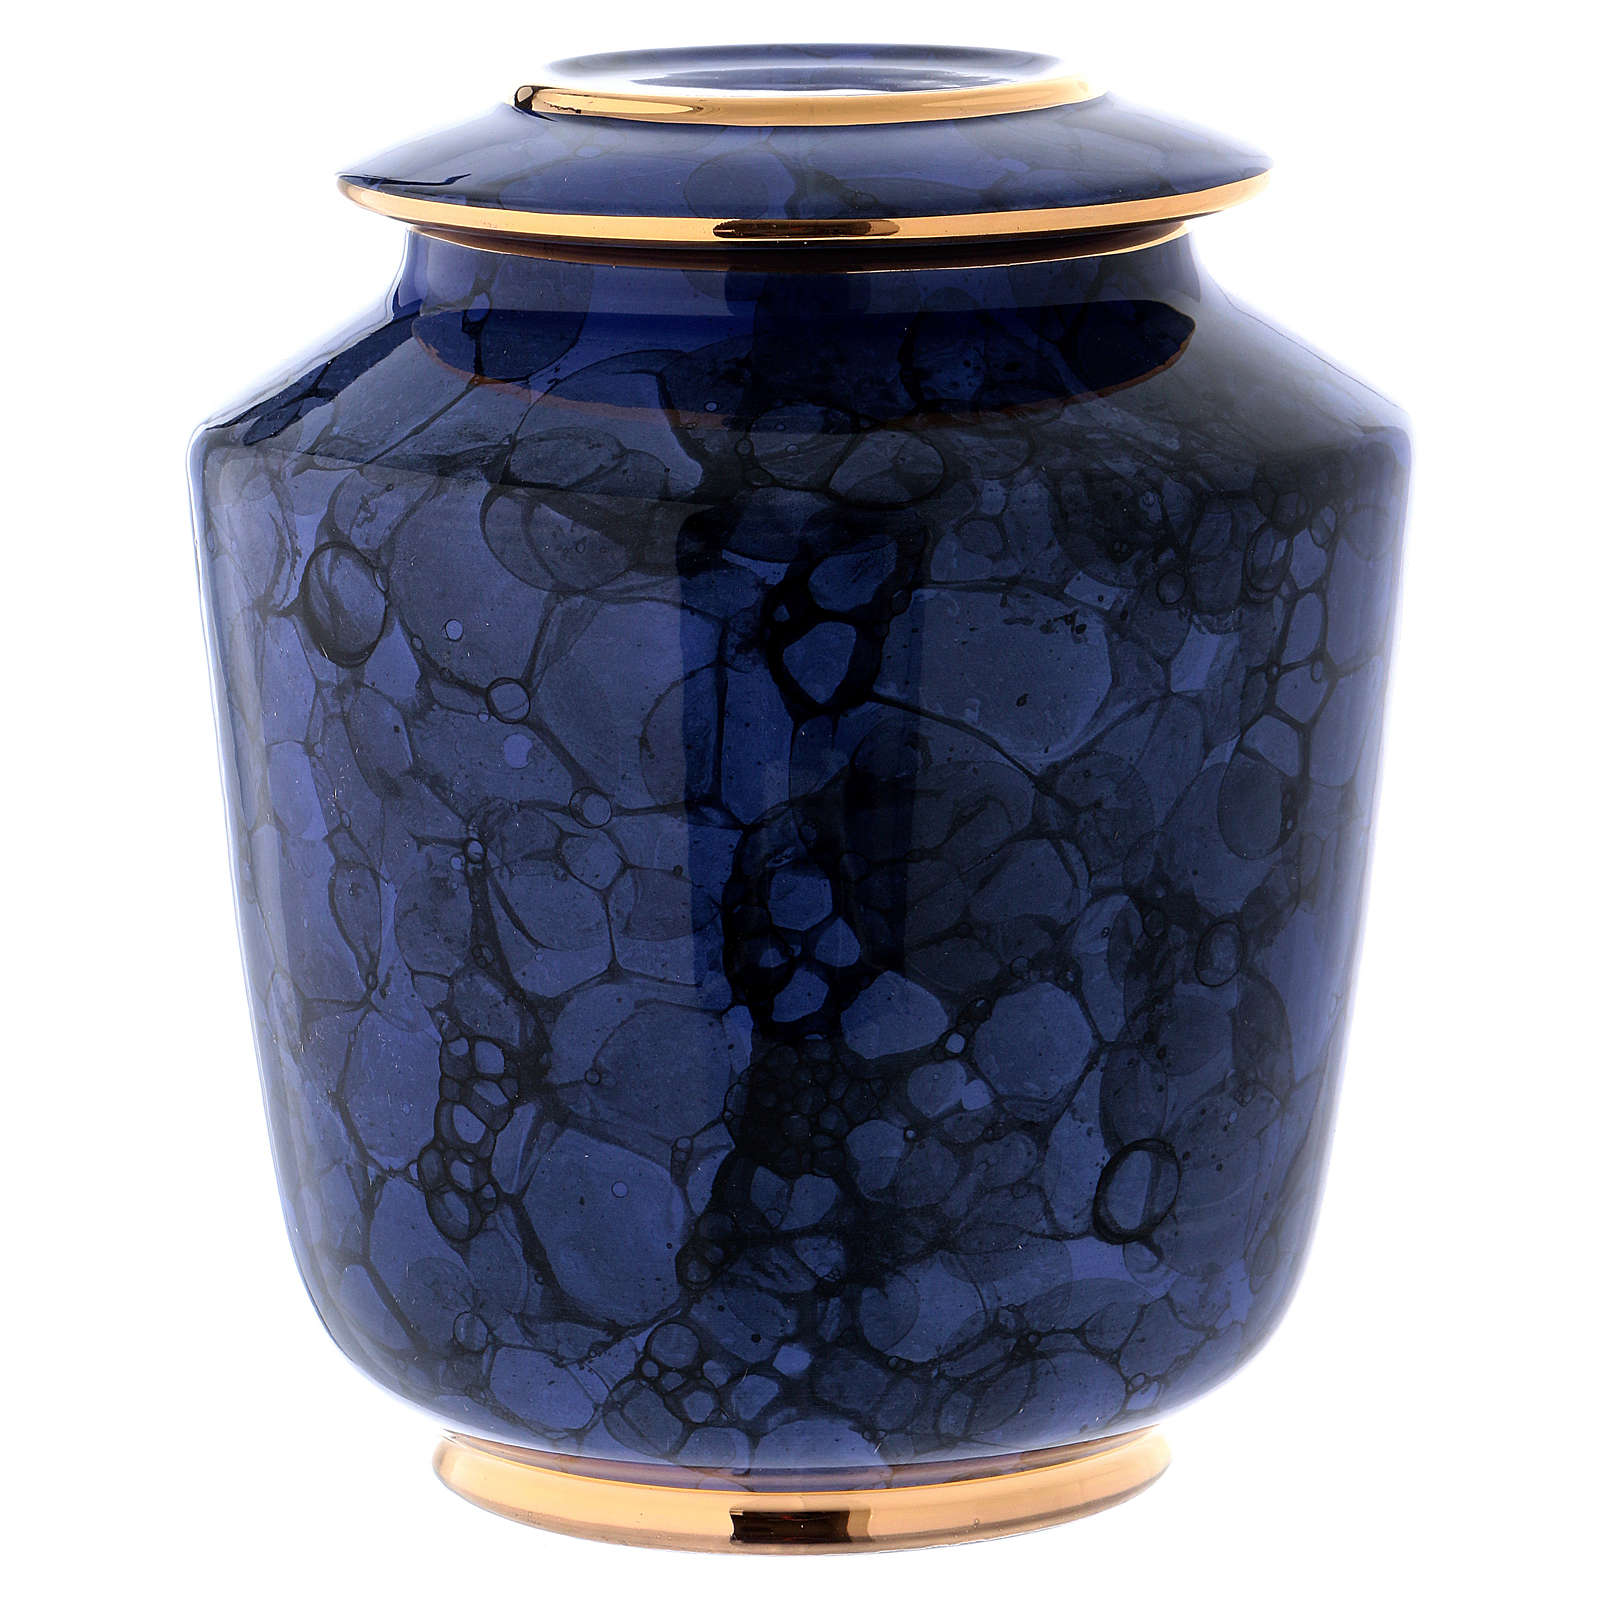 Funerary urn with Bolle decoration, ultramarine blue with golden edges 3